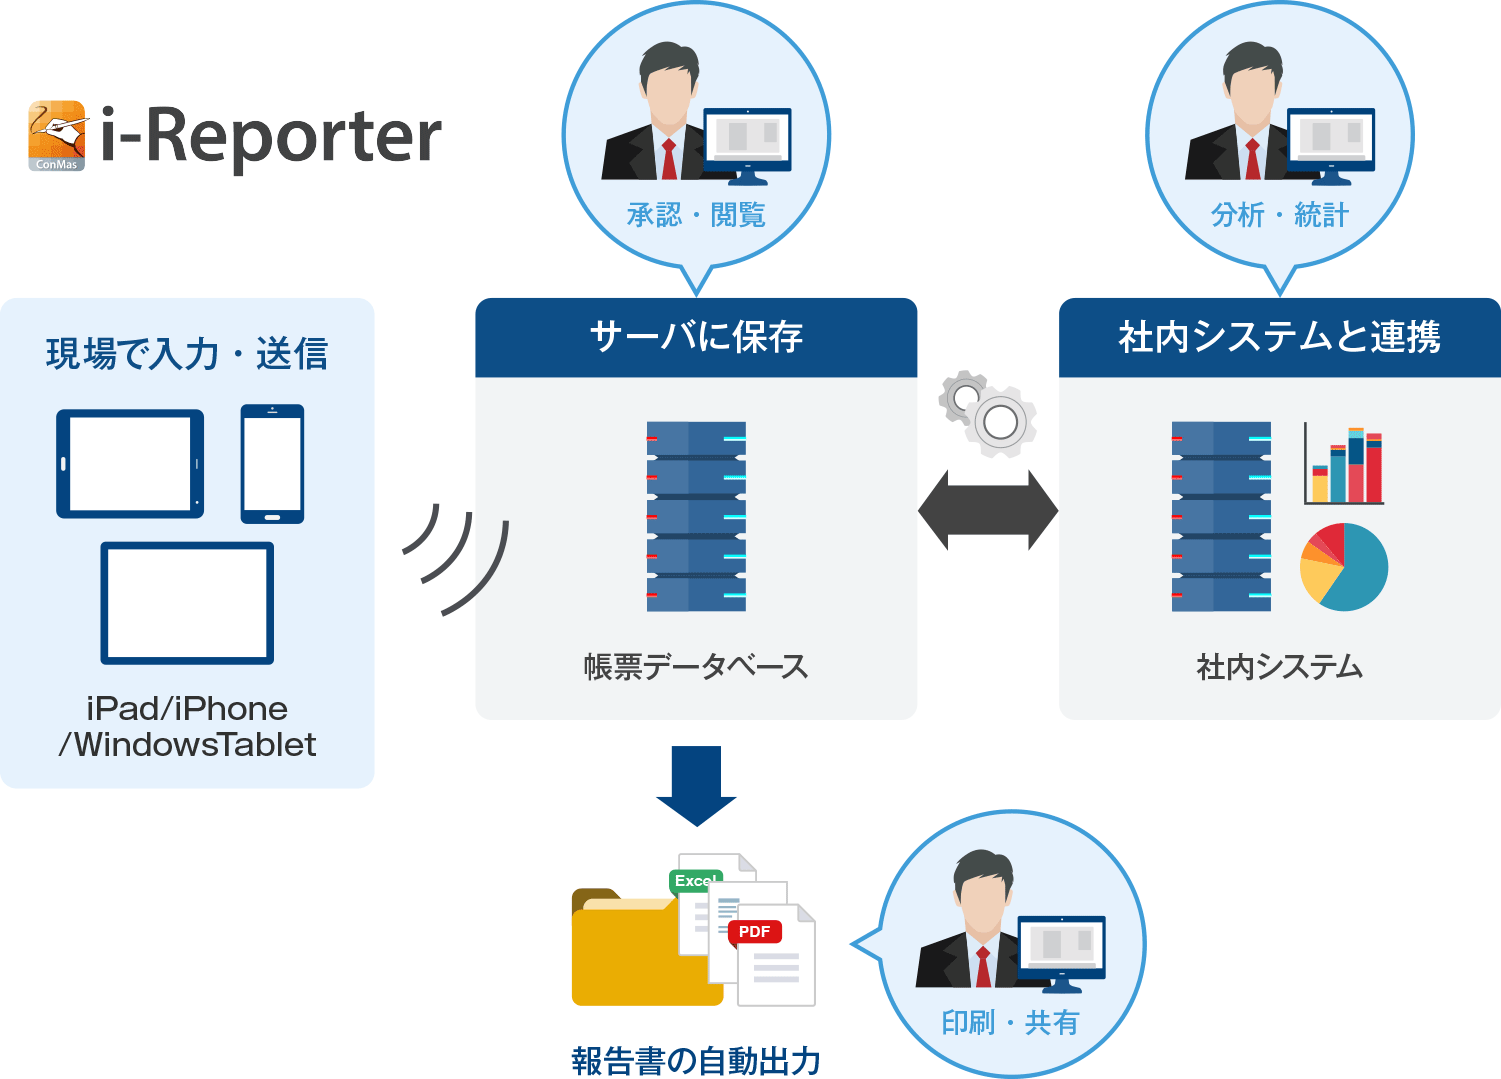 i-reporter-image05.png